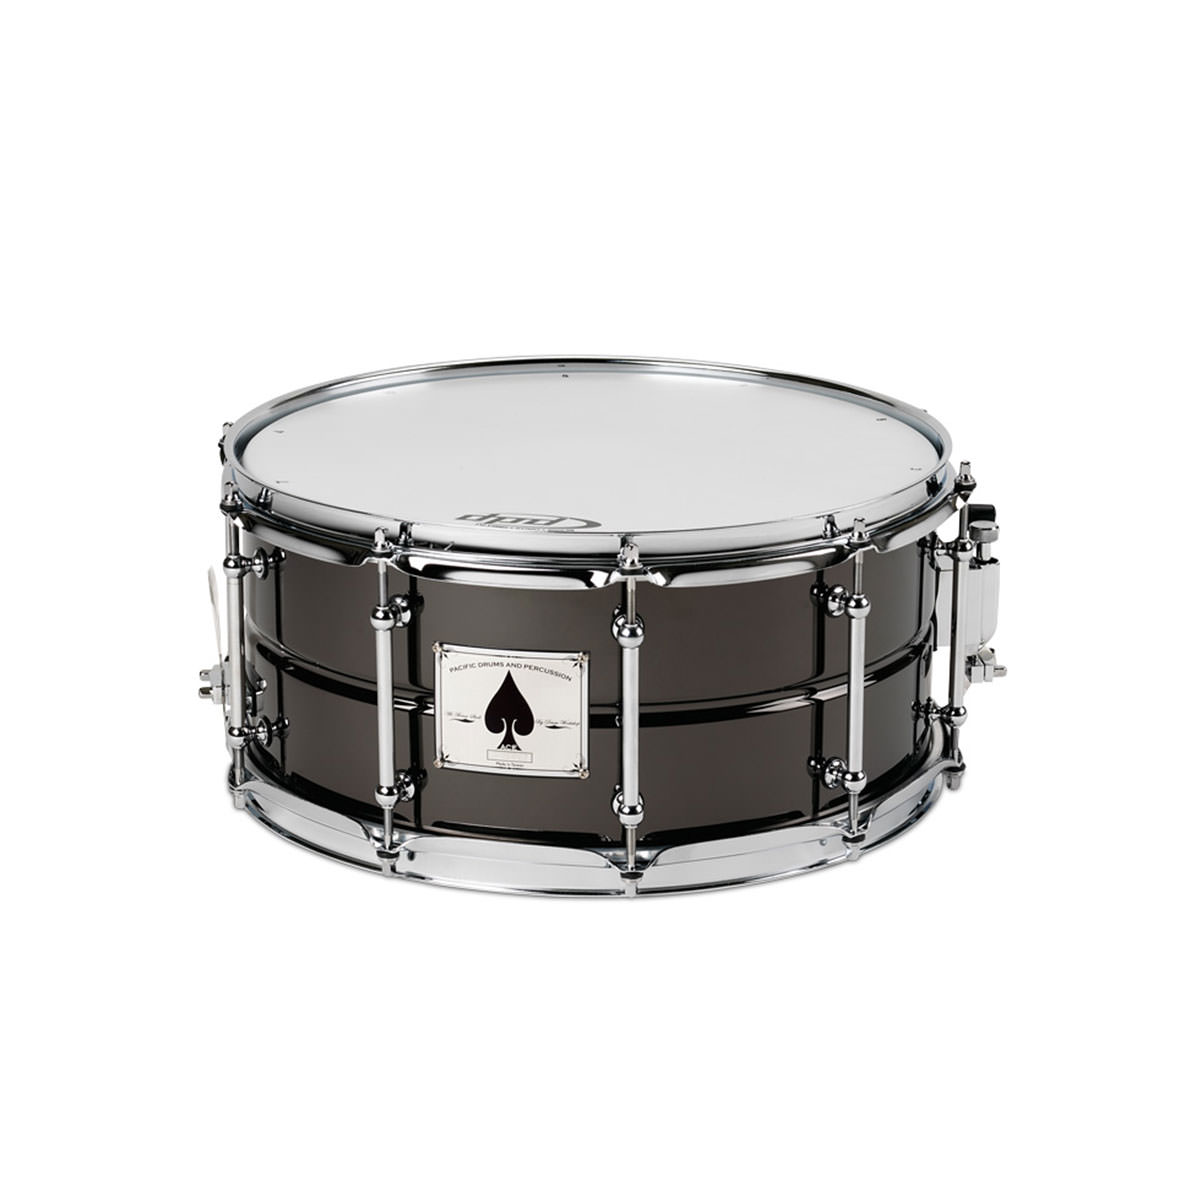 snare drums archives page 2 of 2 marshall music. Black Bedroom Furniture Sets. Home Design Ideas